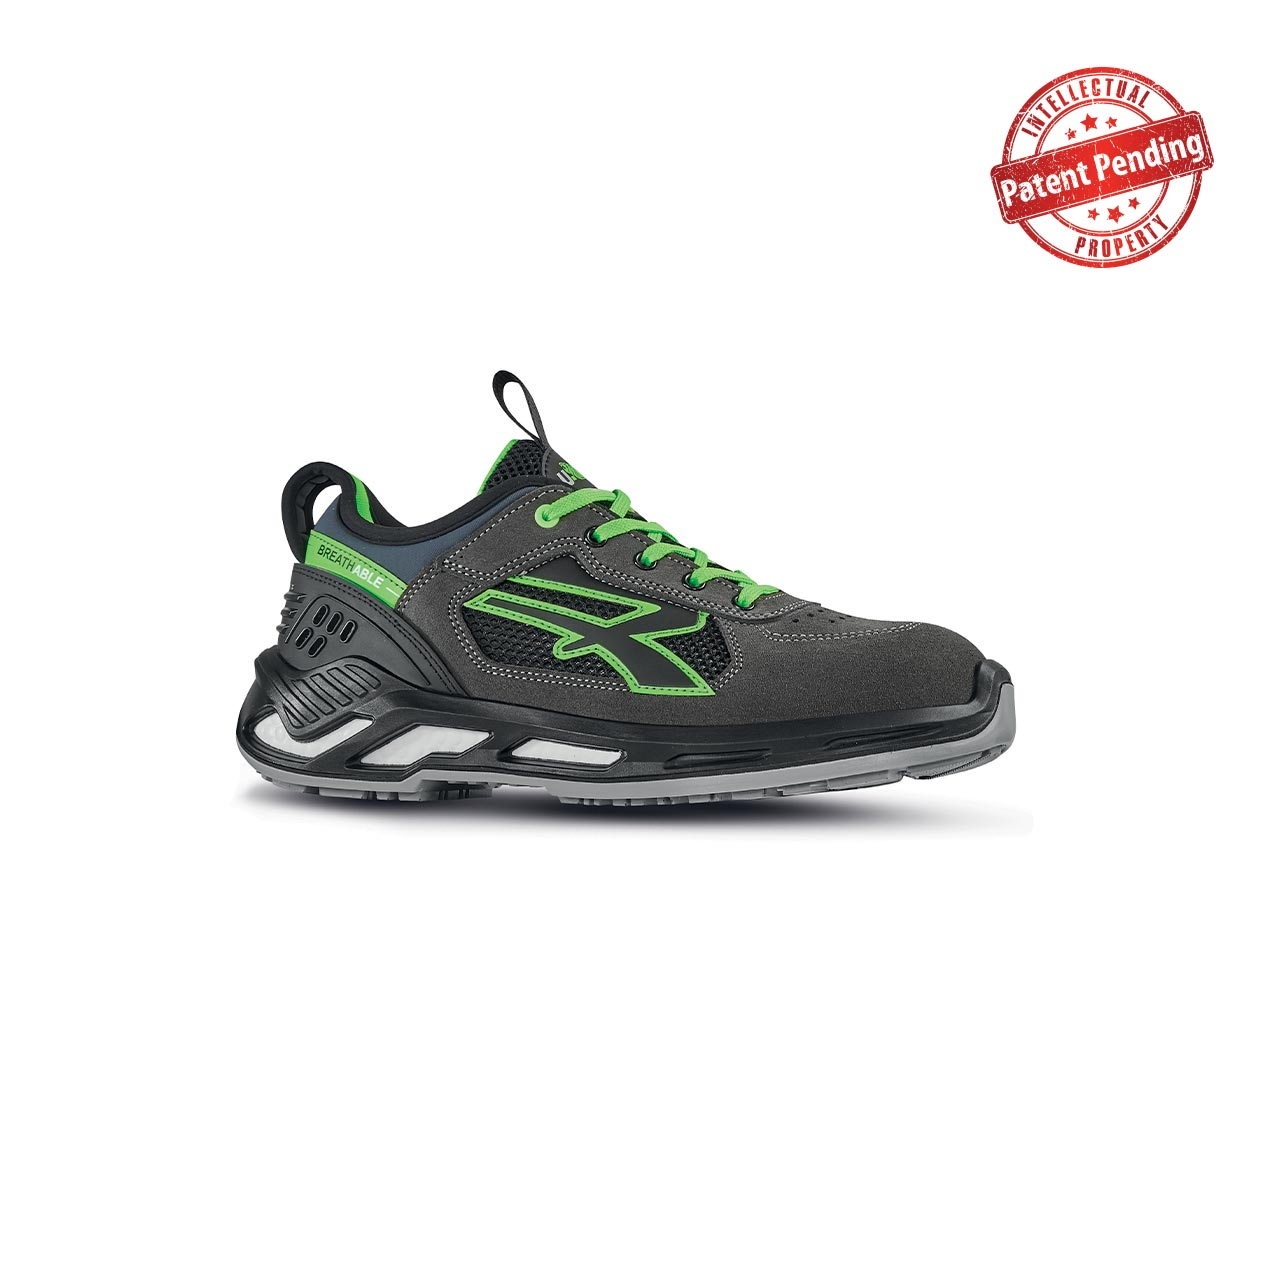 scarpa antinfortunistica upower modello negan linea red360 vista laterale